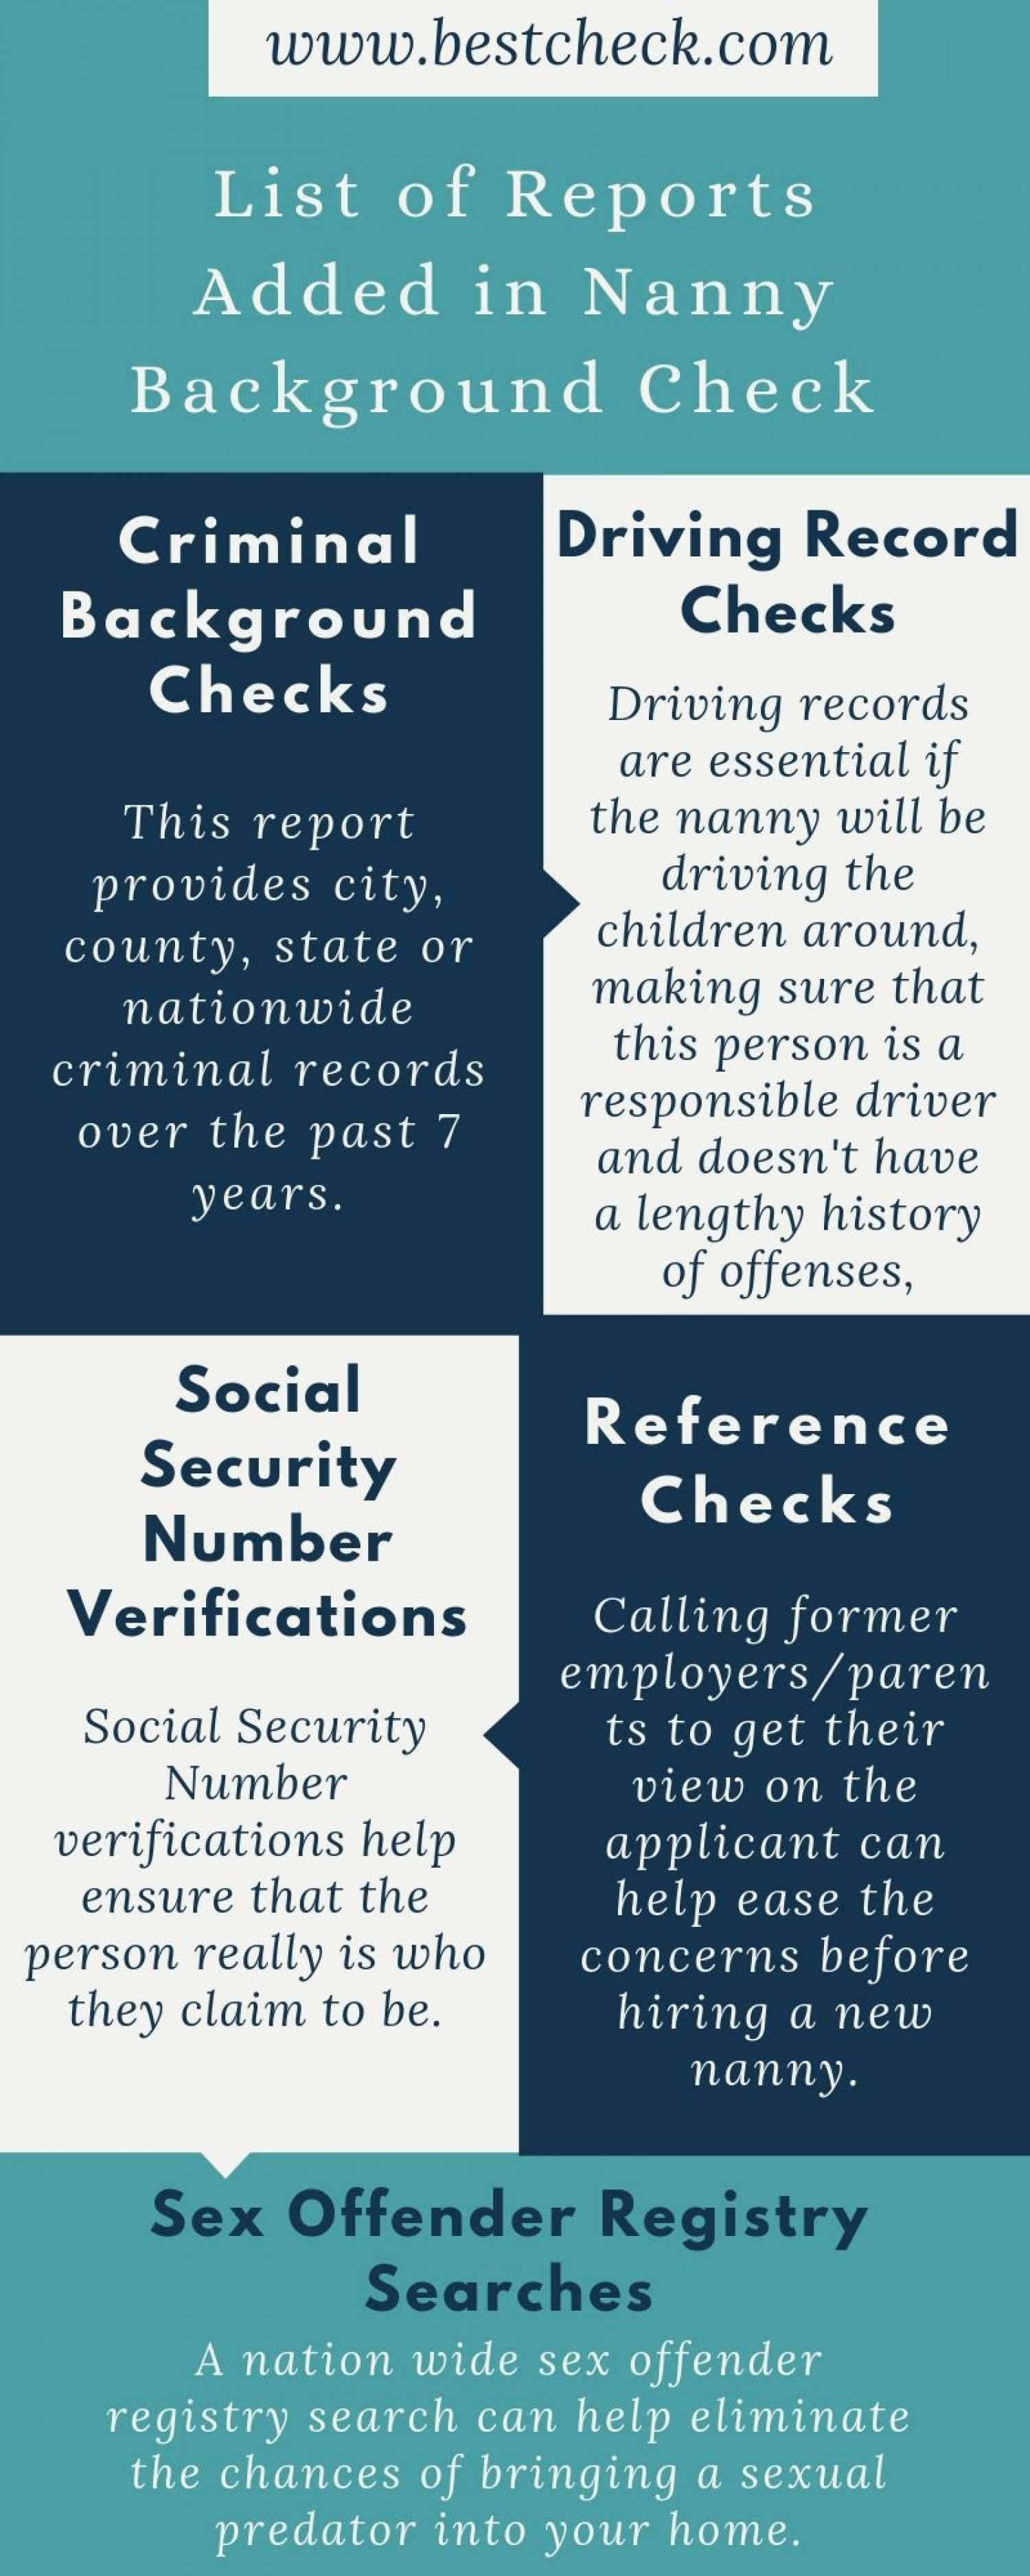 List of Reports Added in Nanny Background Check - BestCheck Infographic